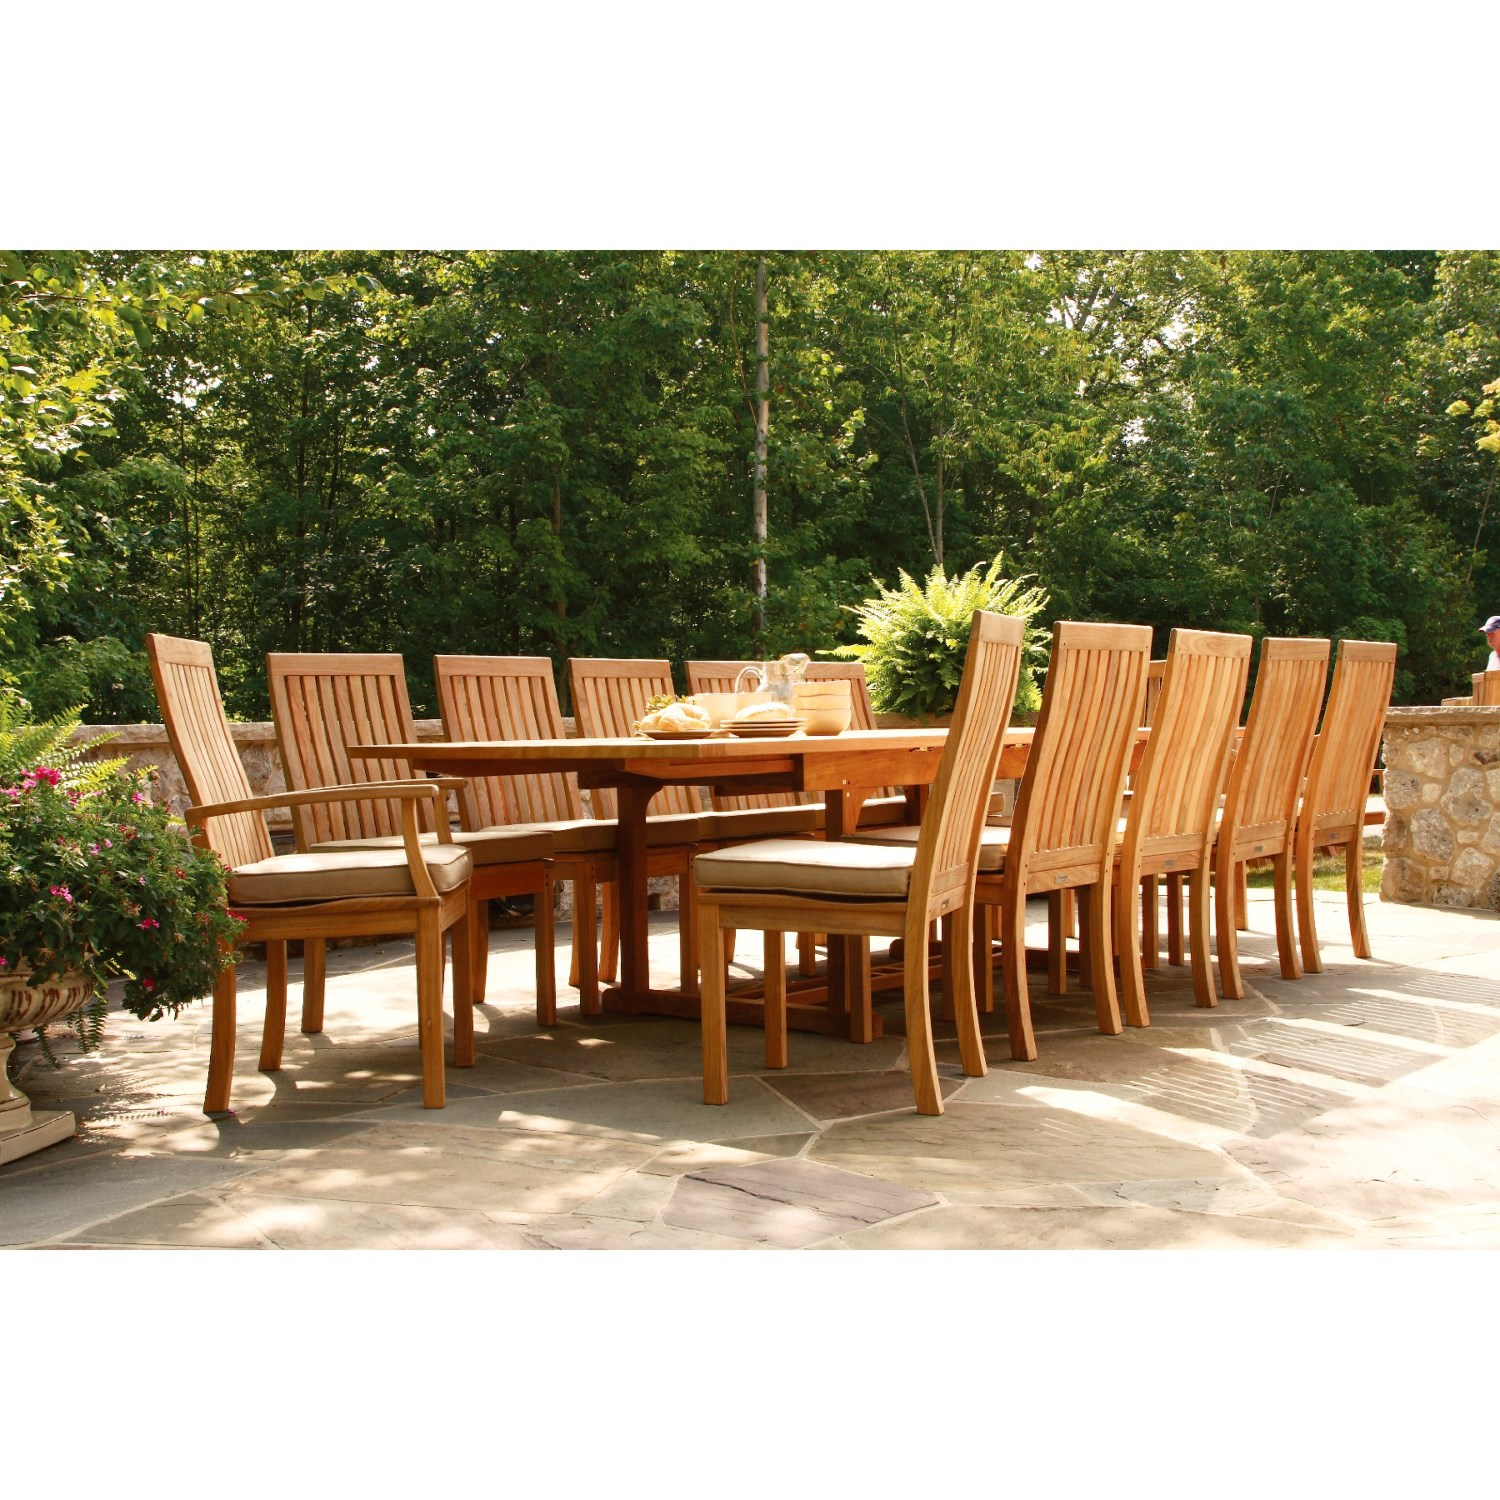 Three birds casual teak wood dining set 13 piece for 13 piece dining table set